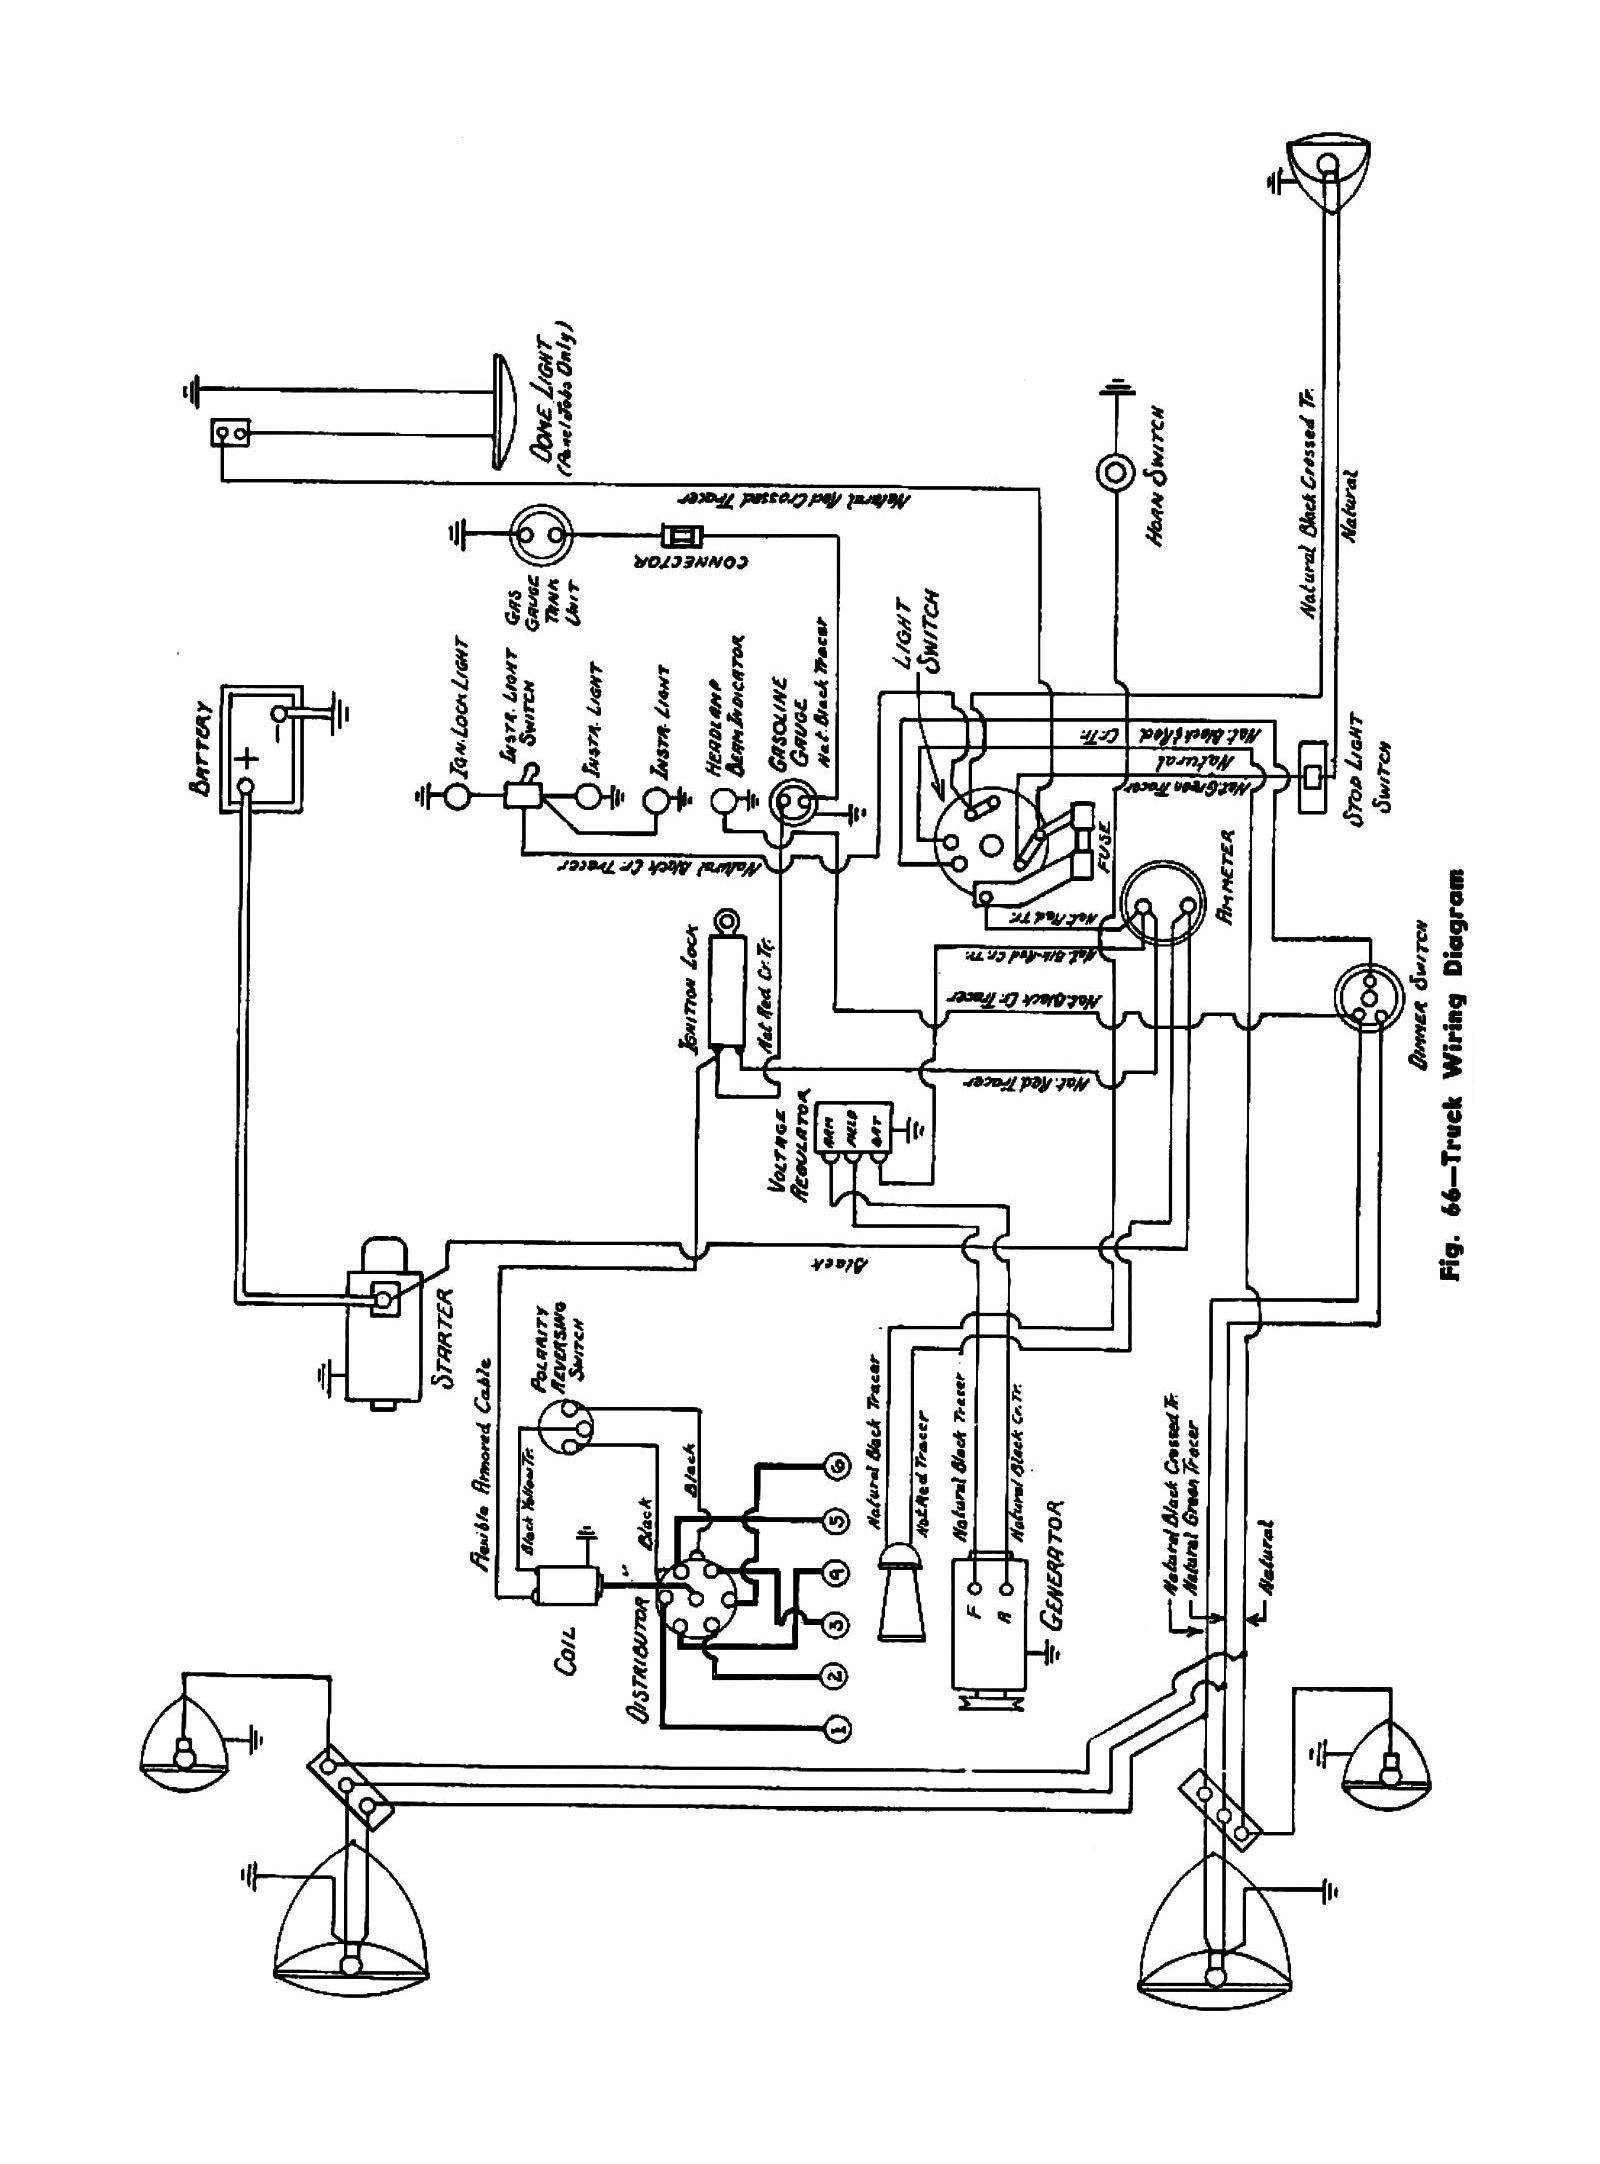 45truck 58 chevy truck wiring diagram wiring schematic diagram